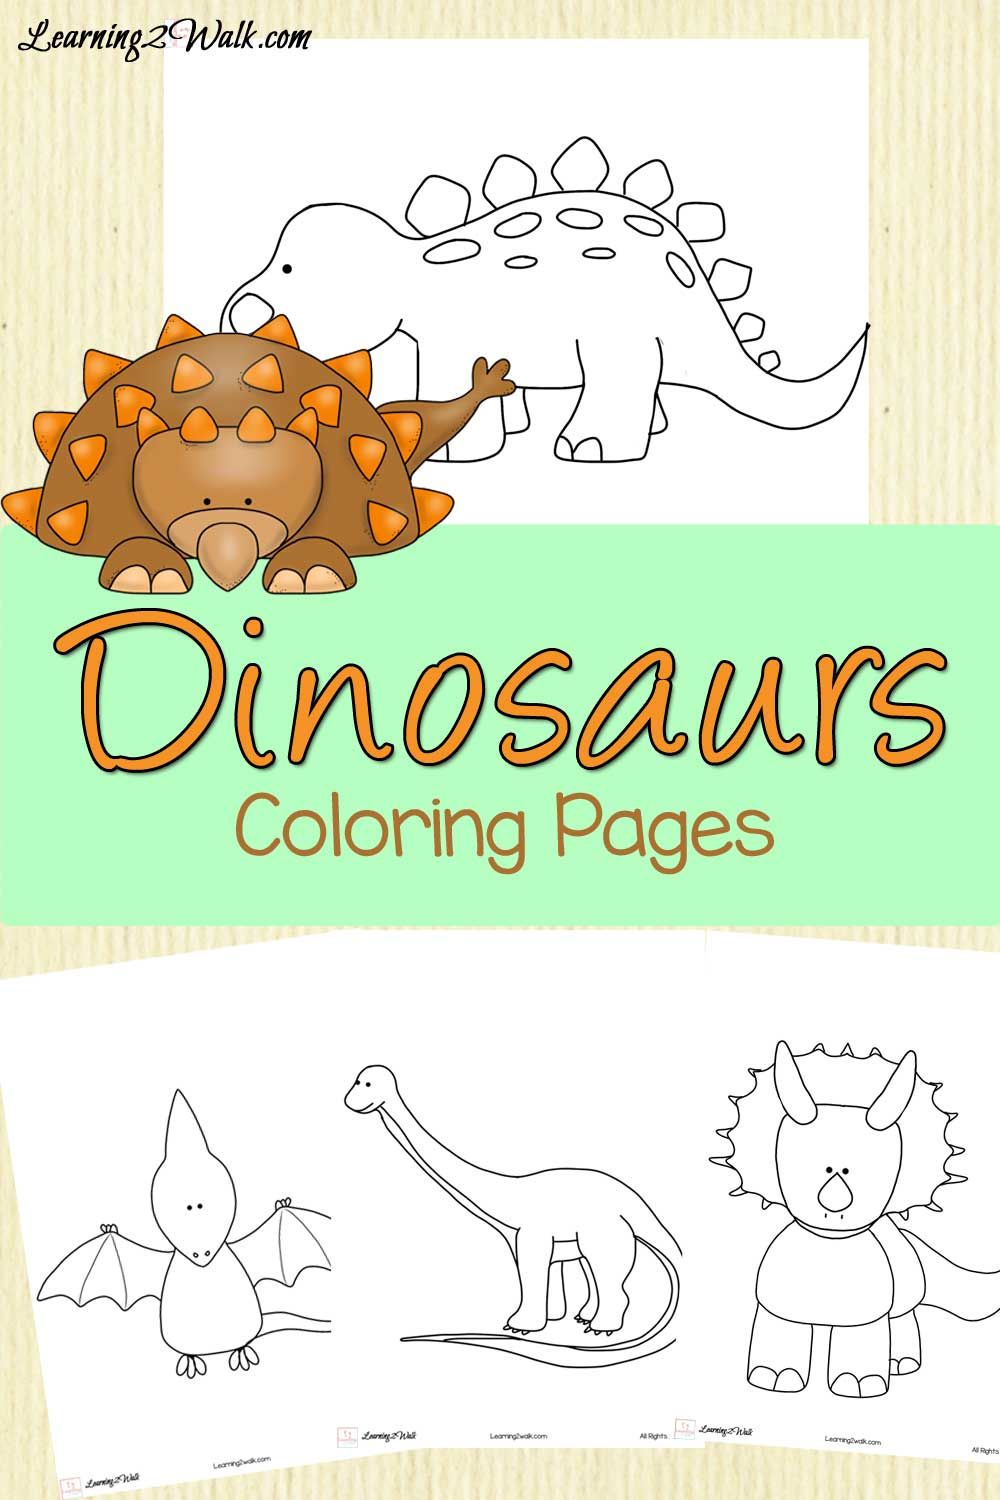 Dinosaur Tracing Coloring Pages - Free Printable | Free printable ...